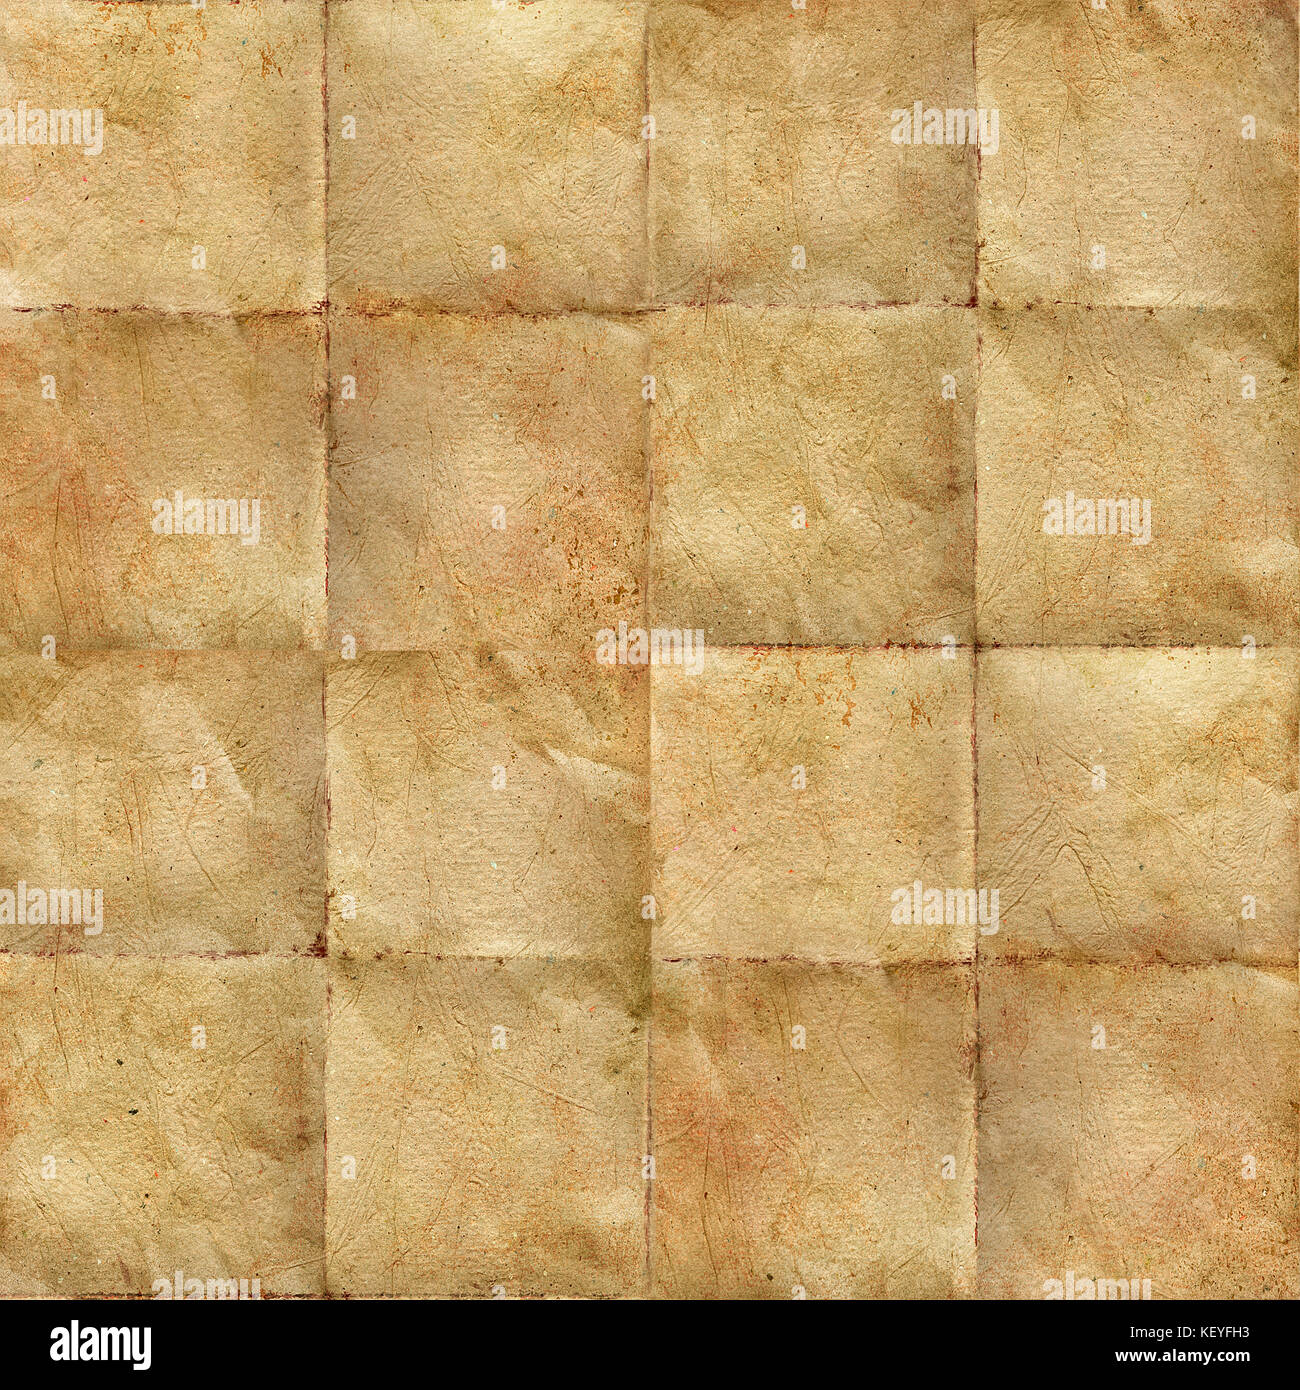 A Vintage Paper Background With Grunge Patterns And TexturesHigh Resolution Seamless Texture